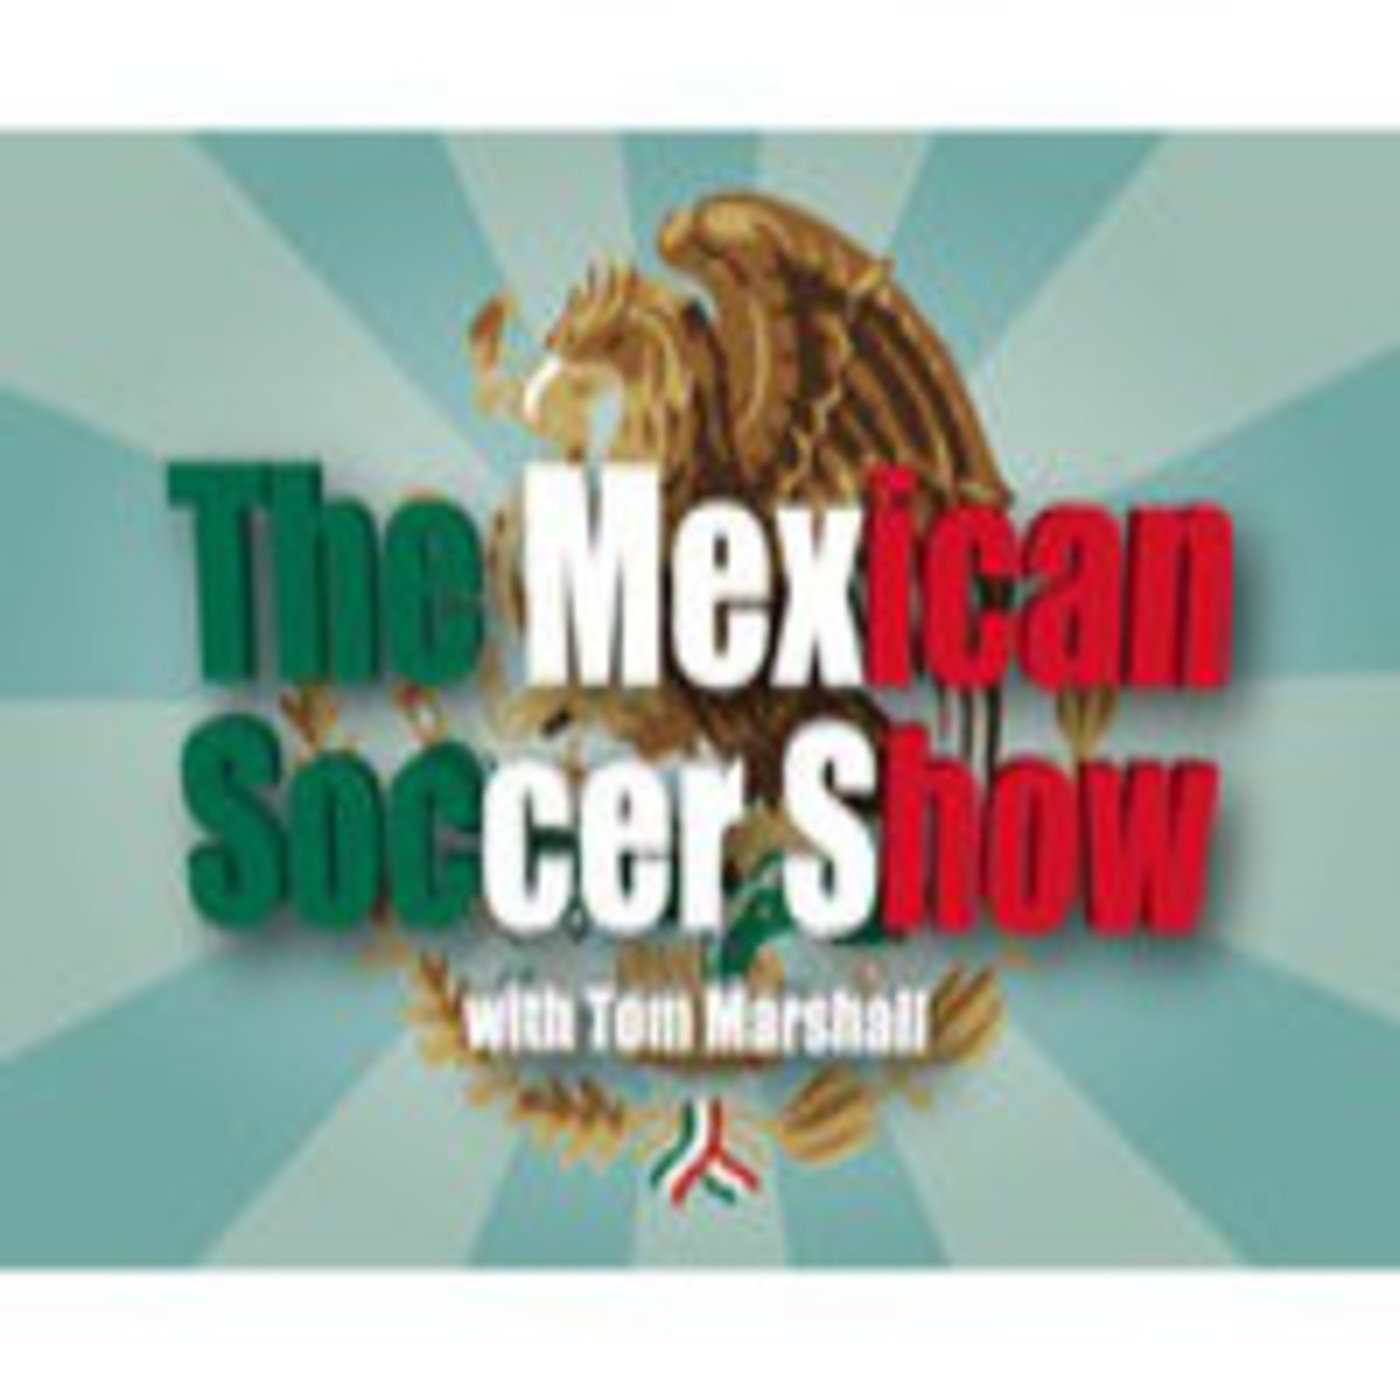 Heated WCQs are in Store for El Tri (September 3, 2013)